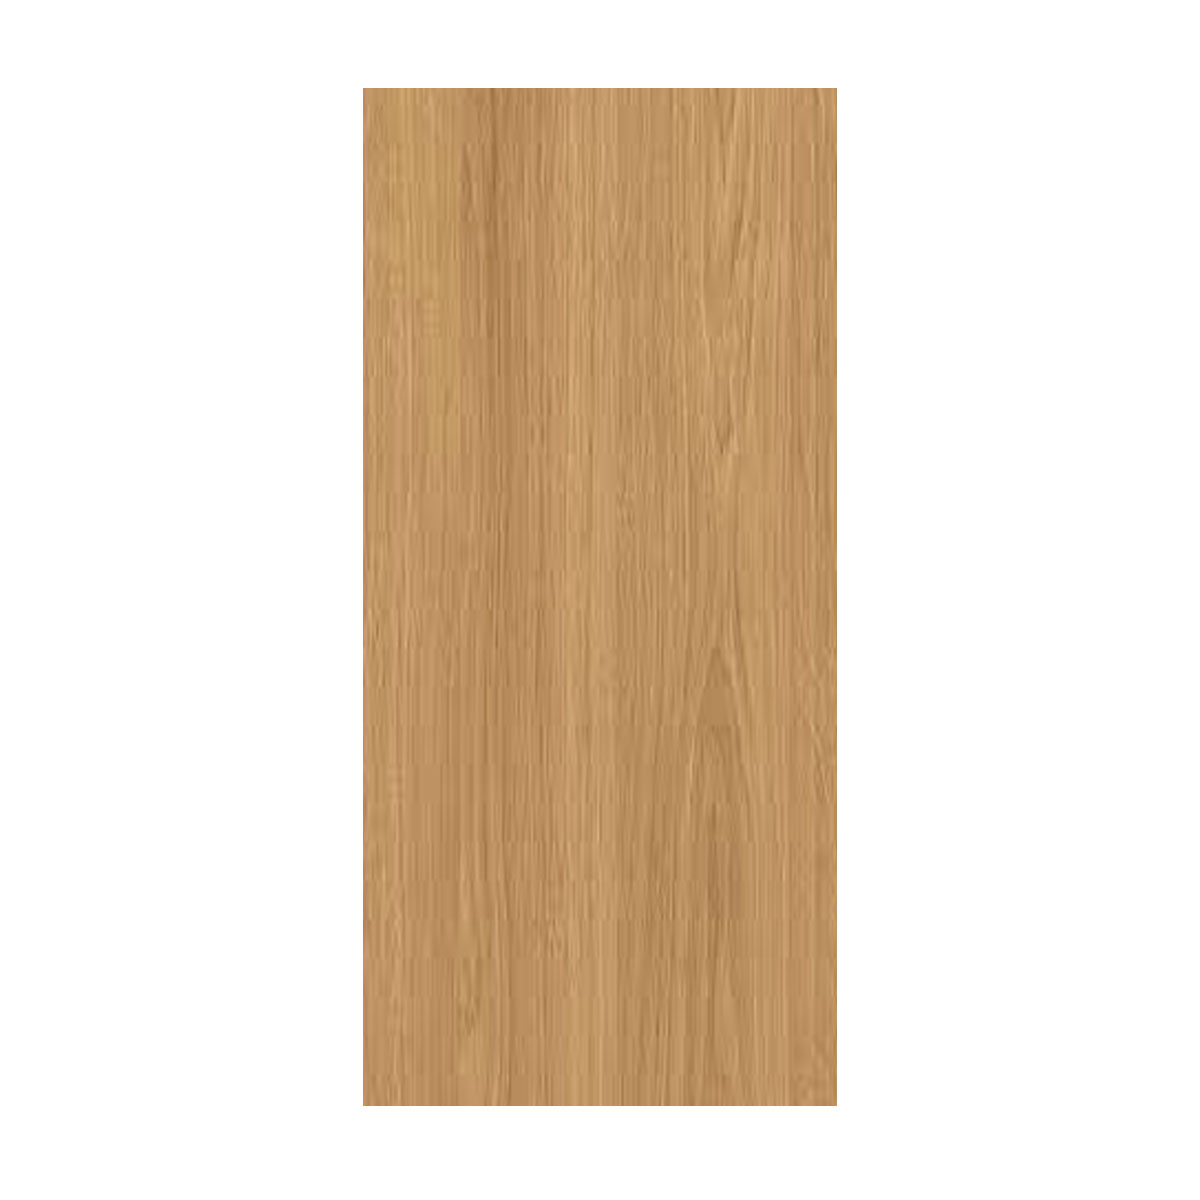 Ferrara Oak End Panel